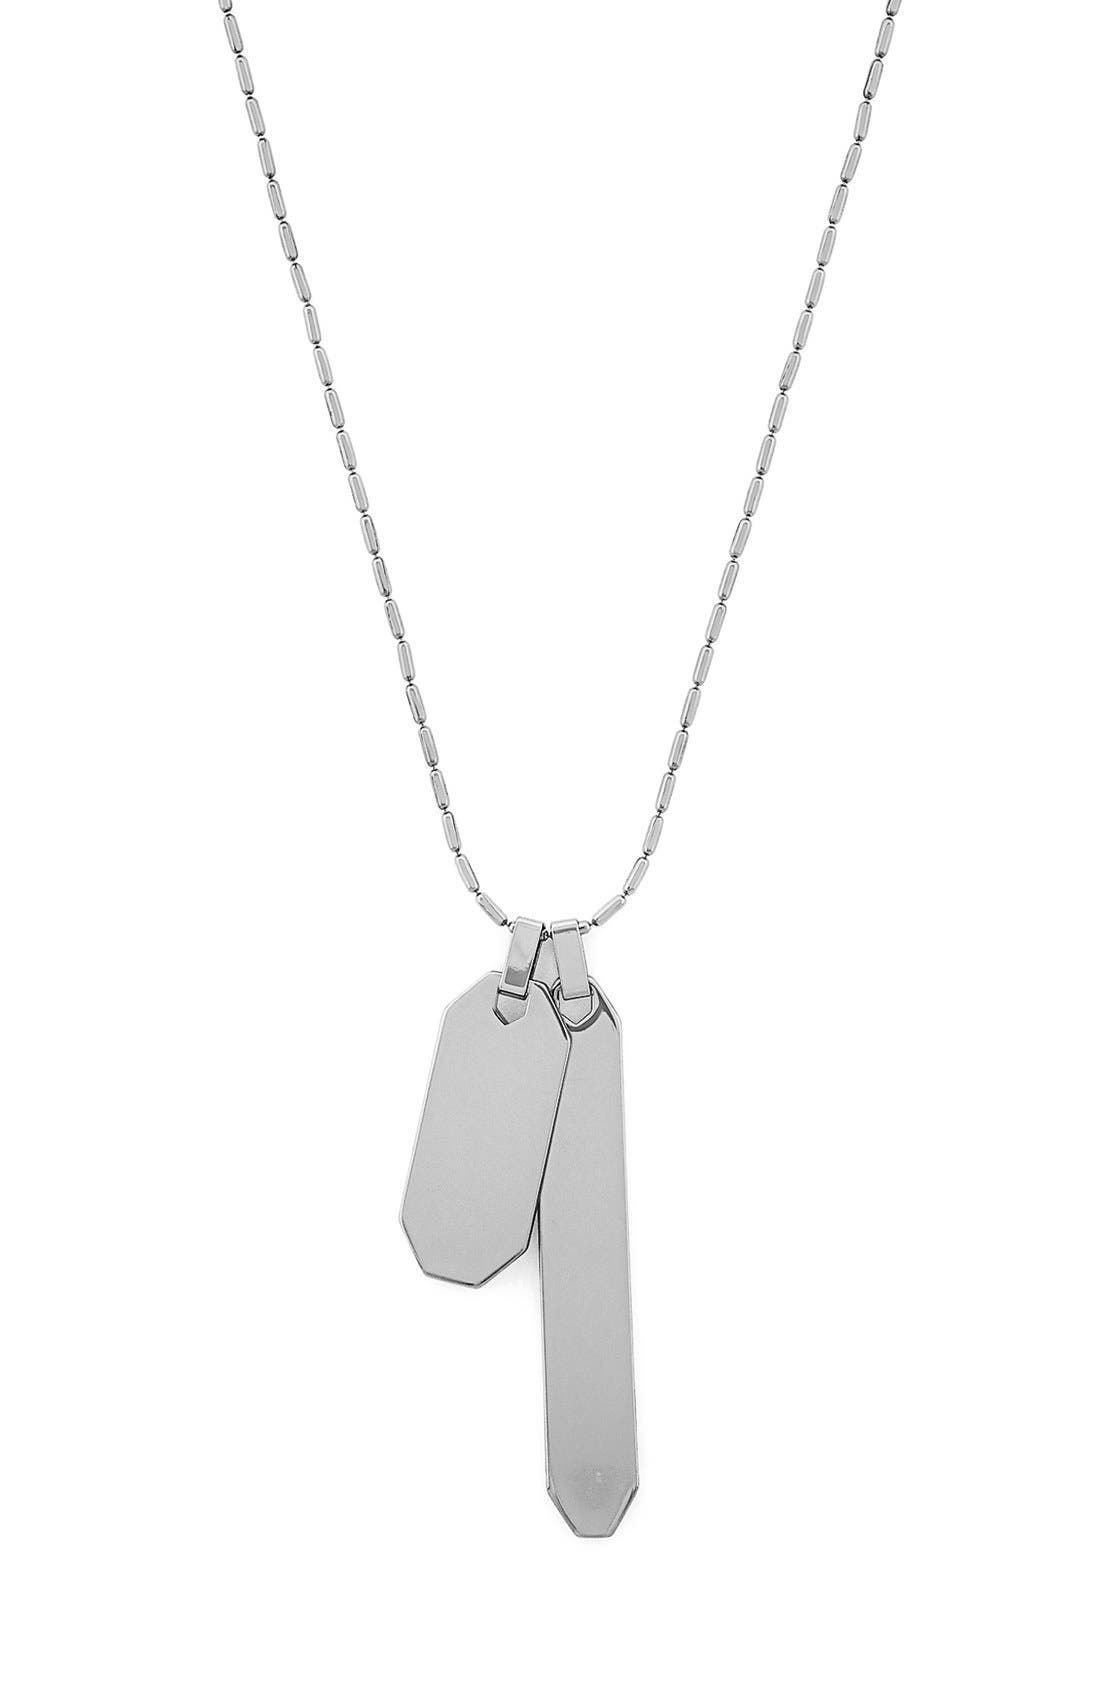 Alternate Image 1 Selected - Vince Camuto Double Tag Pendant Necklace